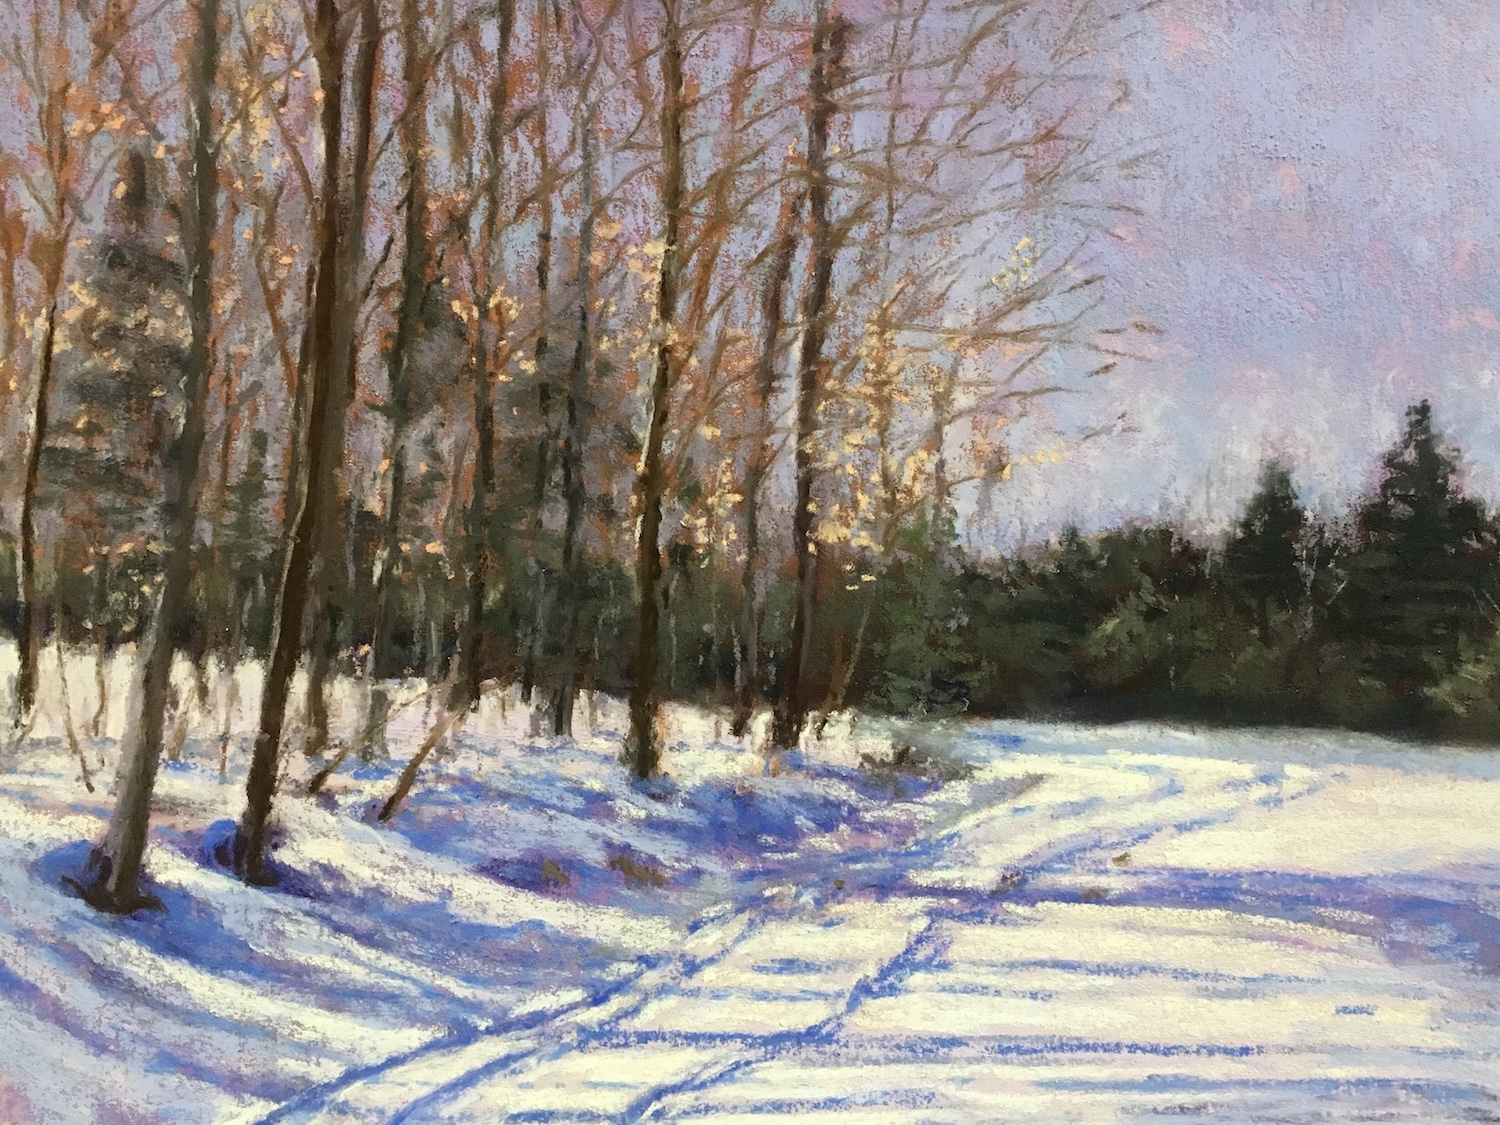 pastel of cross country ski tracks in the snow at the edge of some trees